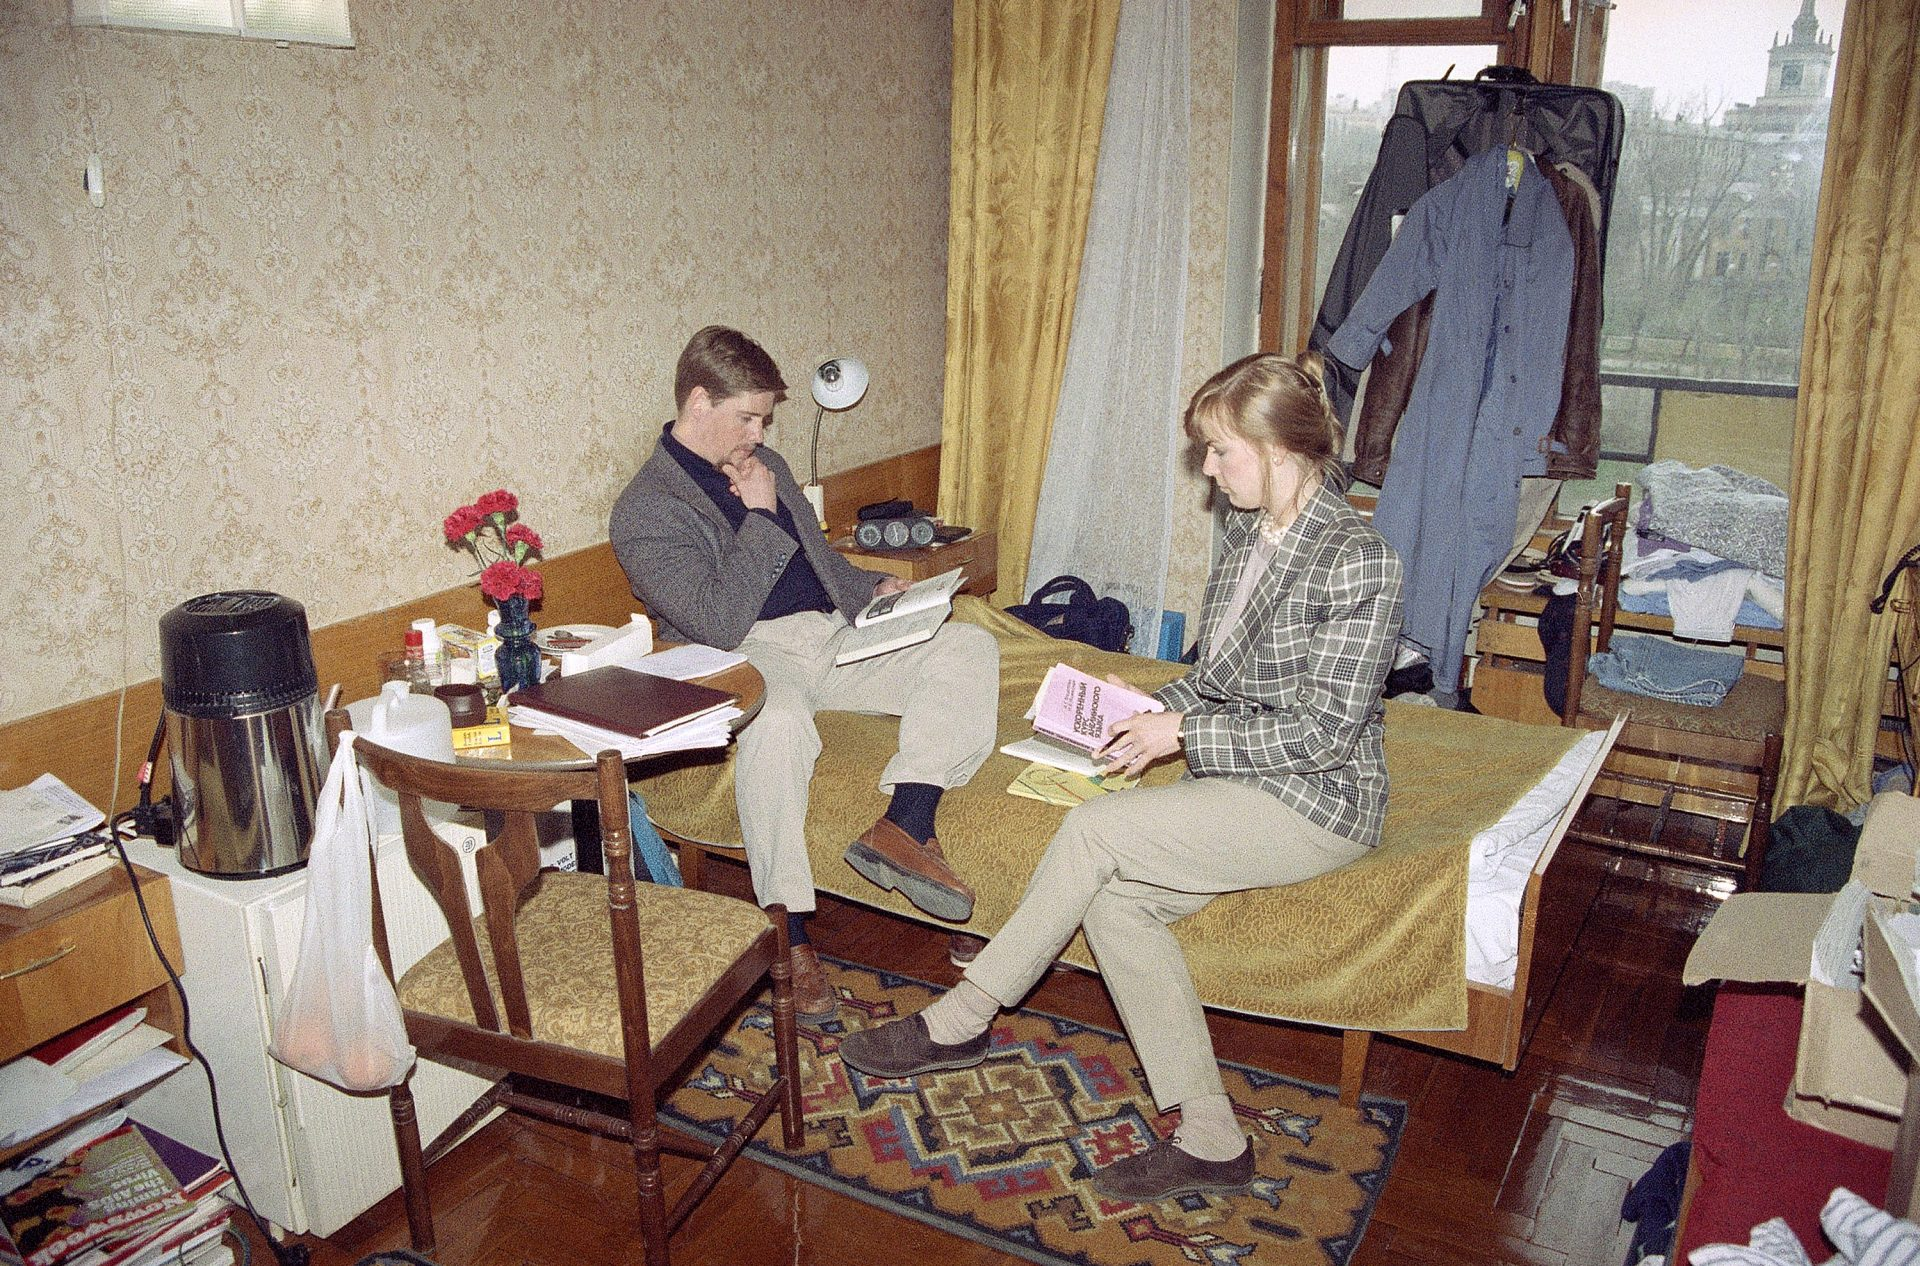 Peace Corps volunteers Kelly Taylor Walker and her husband Robert Walker work and live out of their cramped Volgograd, Russia hotel room, April 27, 1993.